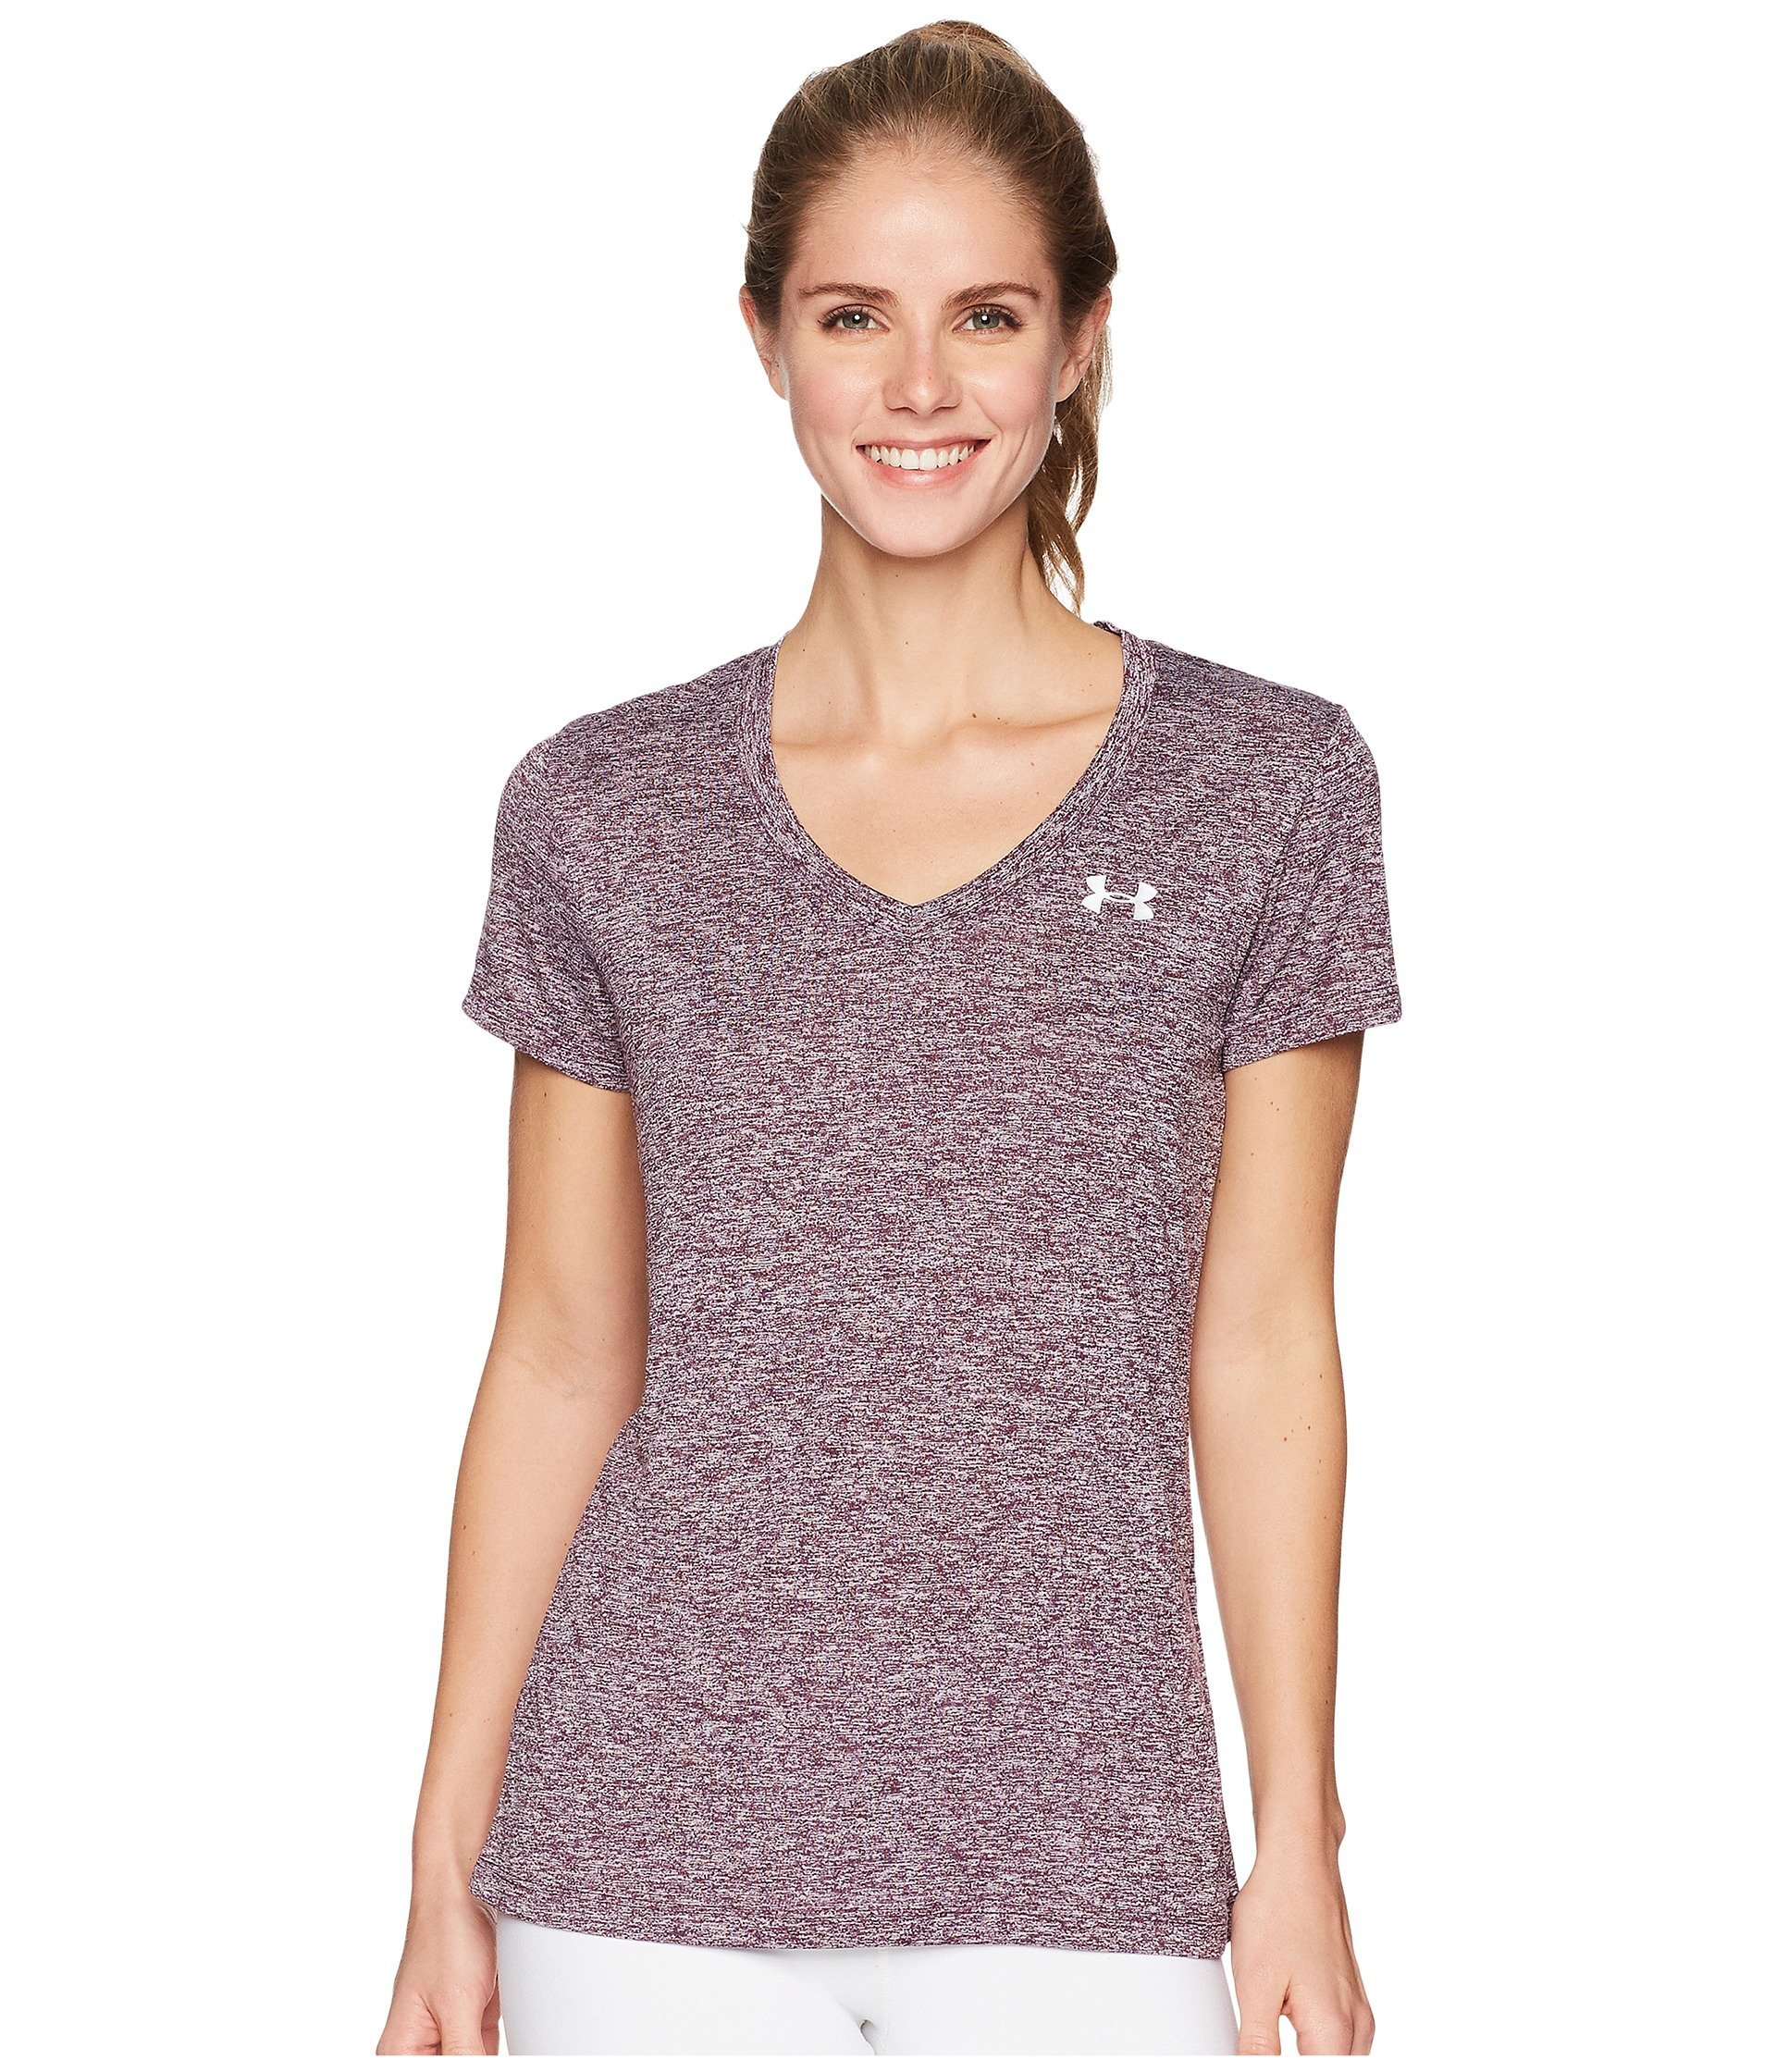 Under Armour Women's UA Tech¿ Twist V-Neck Merlot/Metallic Silver X-Small by Under Armour (Image #1)